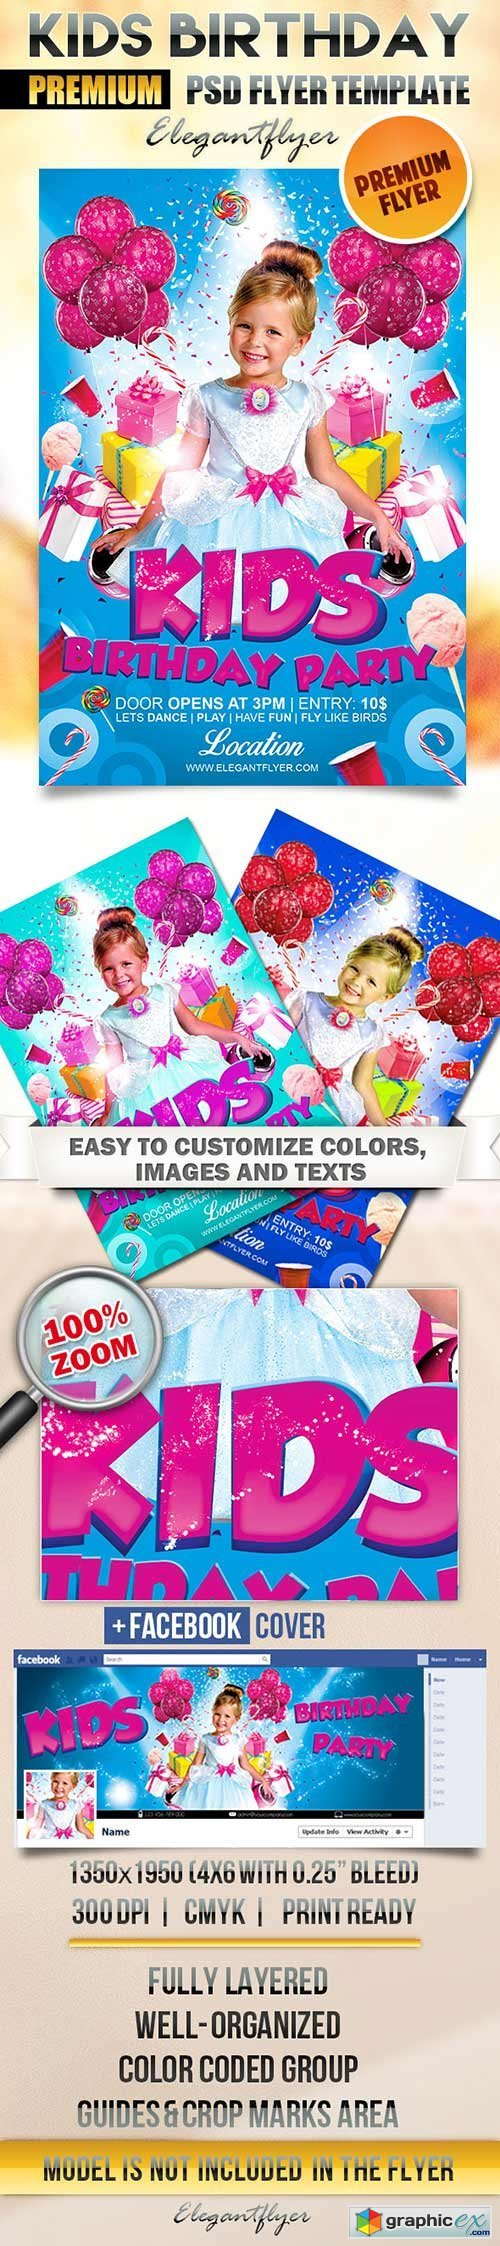 Kids Birthday Party Flyer PSD Template + Facebook Cover